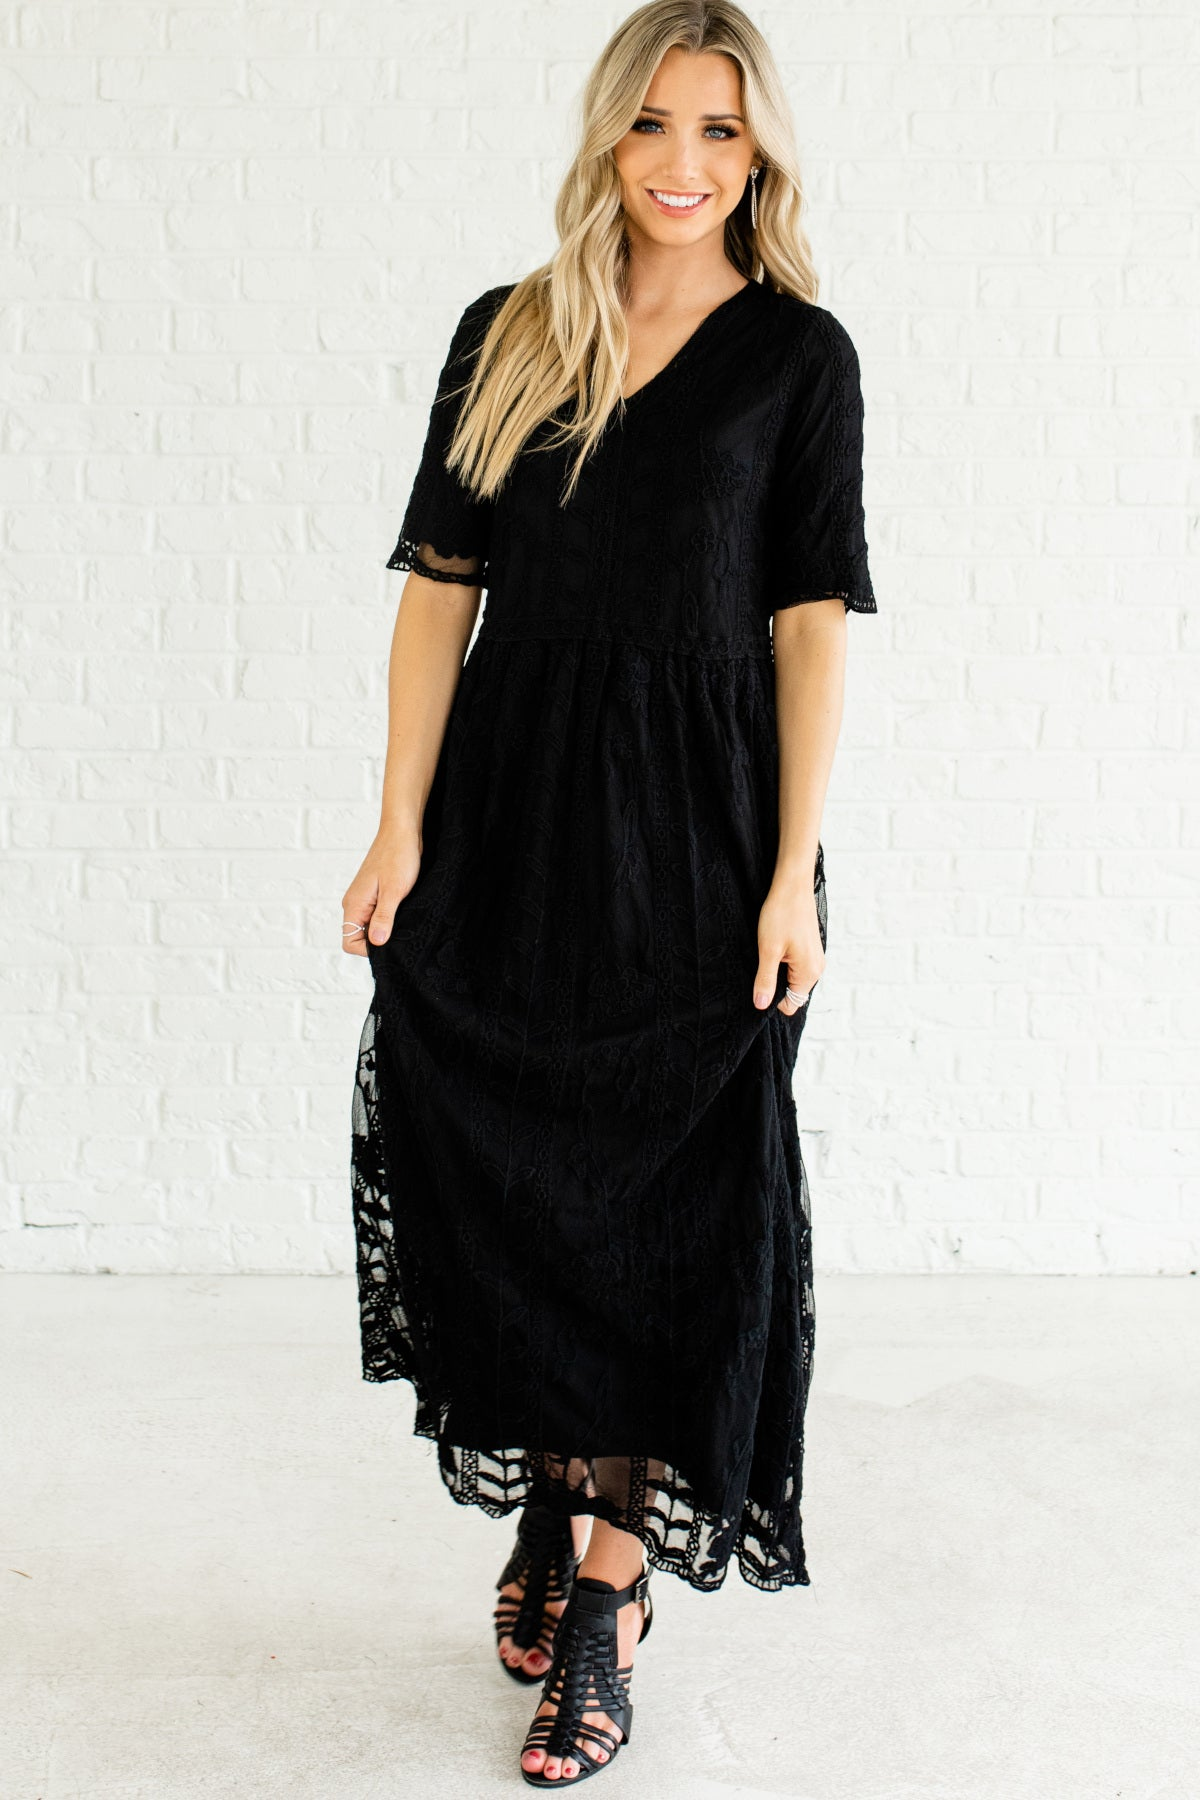 4b0a2dd178244 Black Embroidered Lace Boho Chic Long Maxi Dresses Affordable Online  Boutique